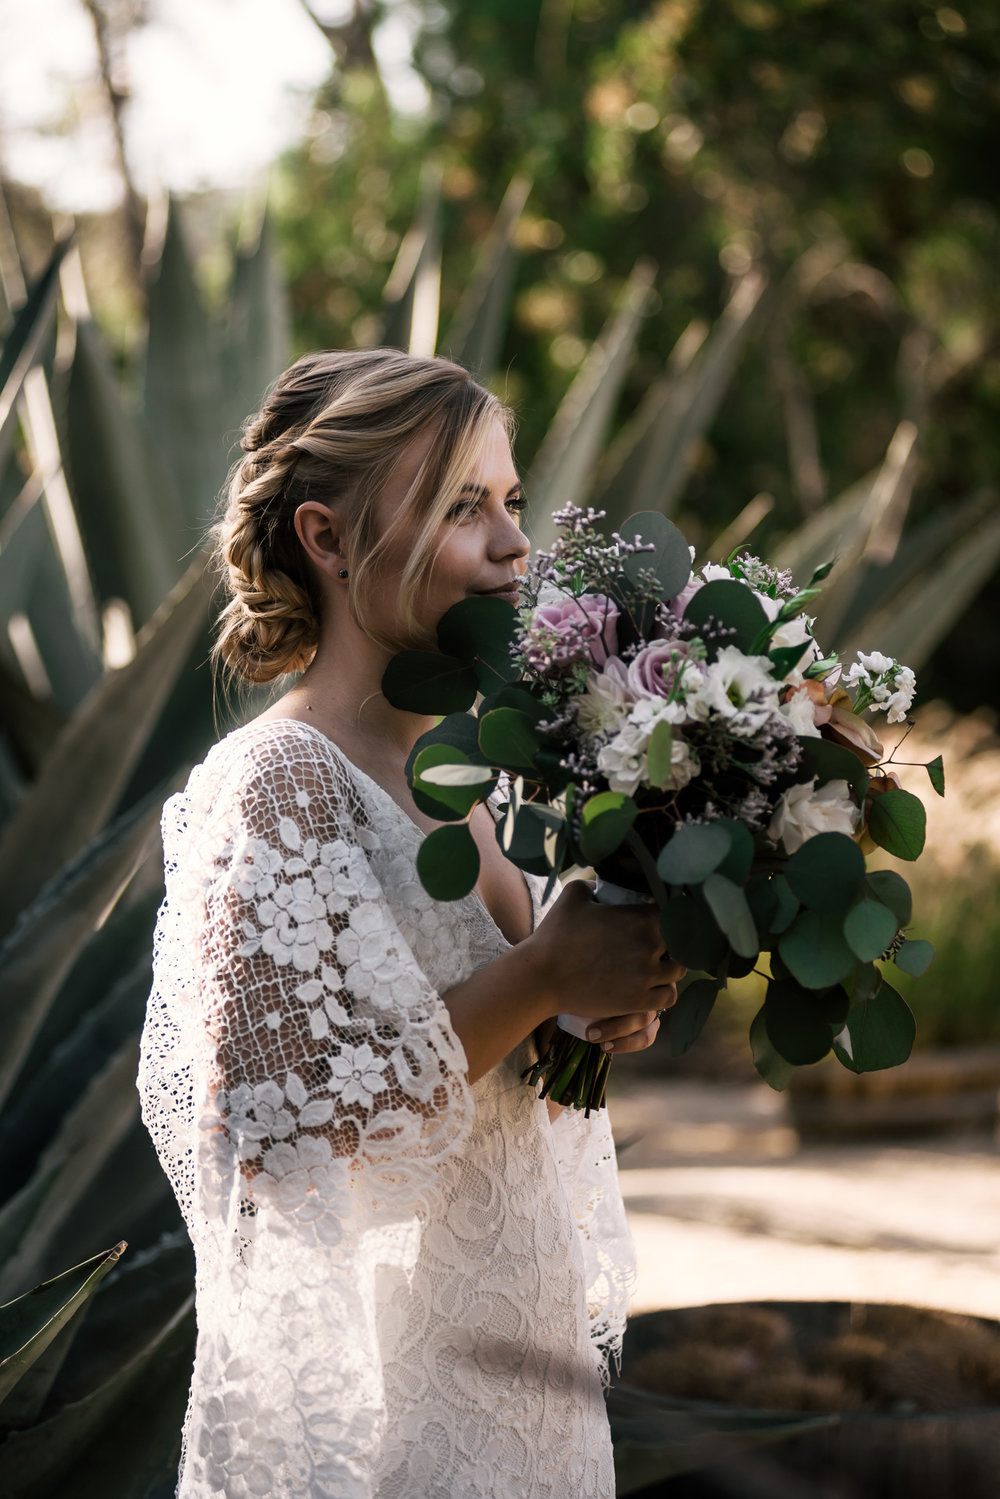 bride shows off her beautiful flower bouquet captured by photographer during romantic wedding at the historic Leo Carrillo Ranch in Carlsbad California